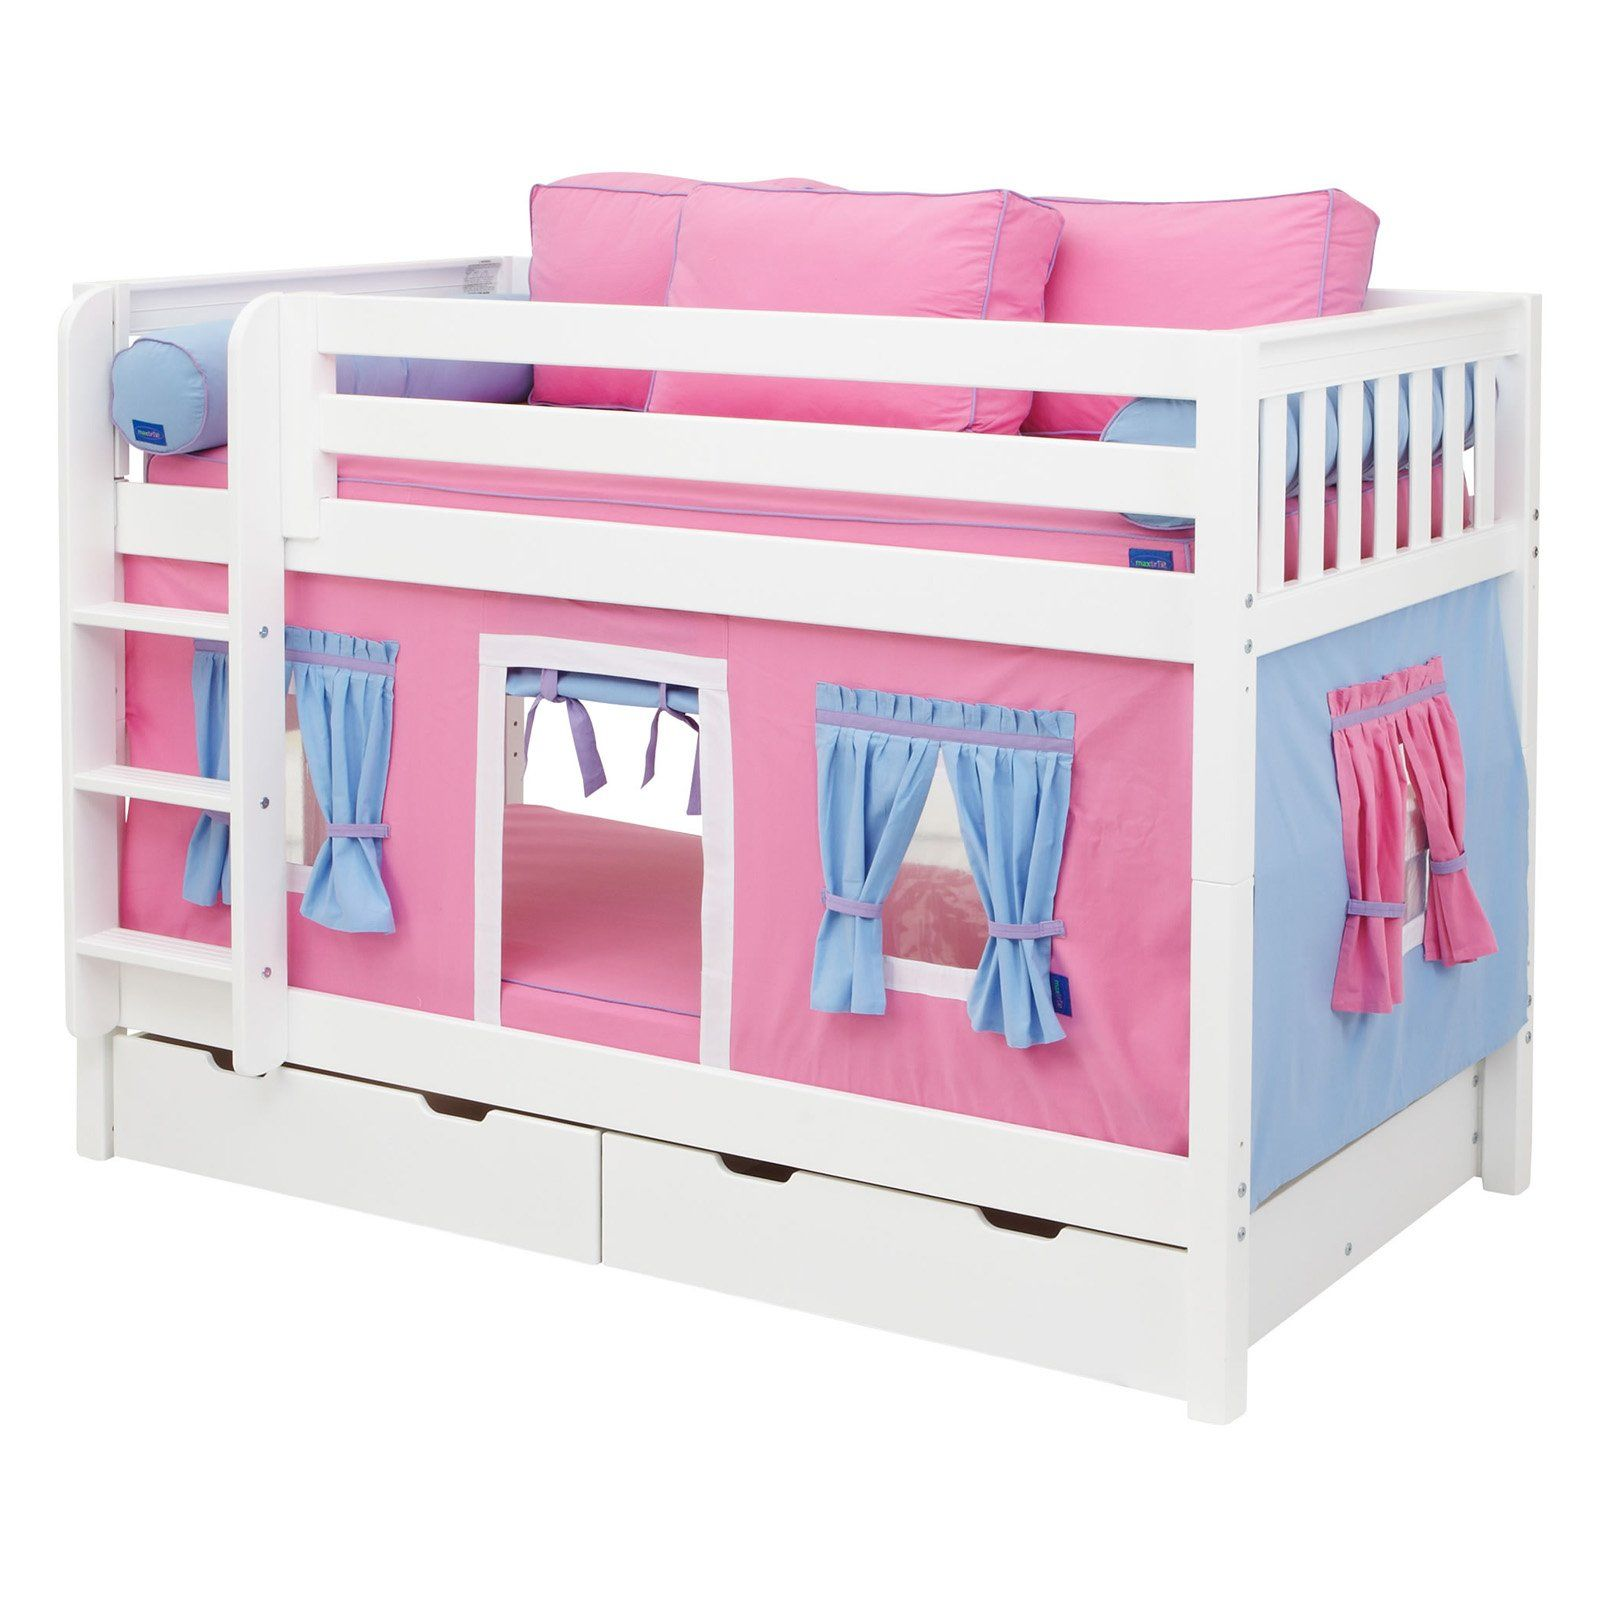 Bunk bed curtains - Hot Shot Girl Twin Over Twin Tent Bunk Bed 1289 99